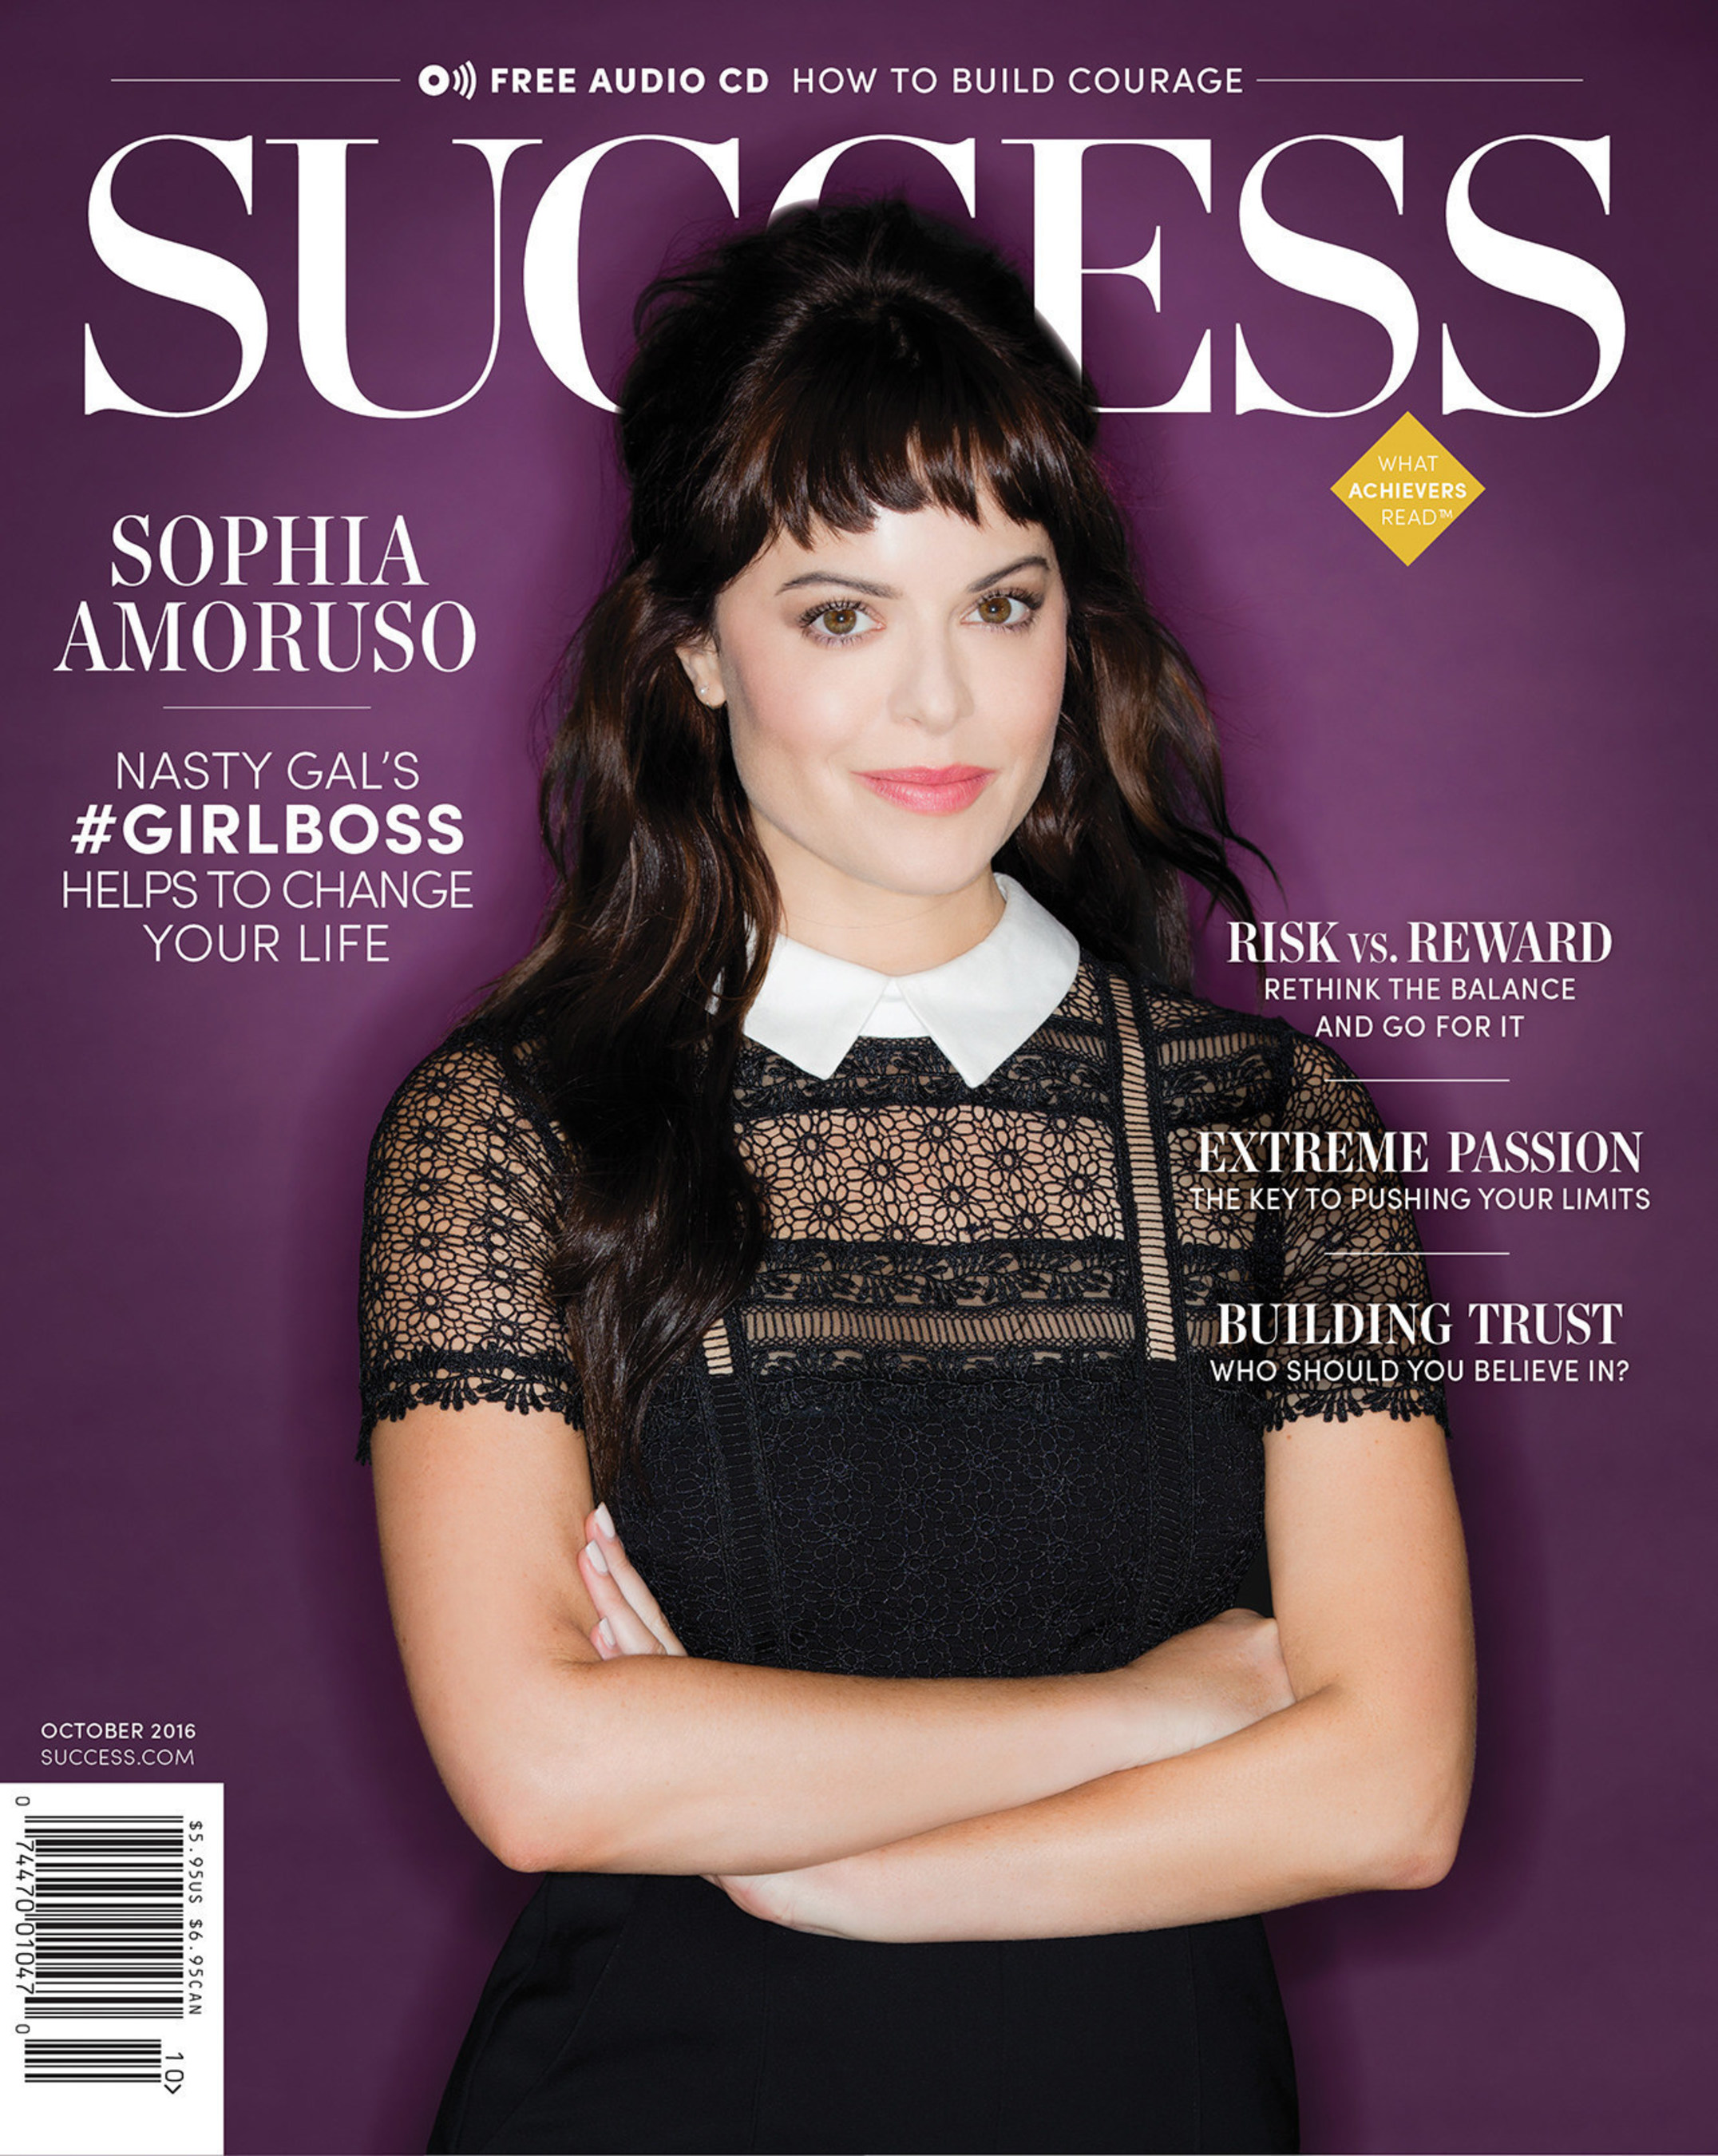 Nasty Gal's #GIRLBOSS Sophia Amoruso Will Help Change Your Life in the October Issue of SUCCESS Magazine